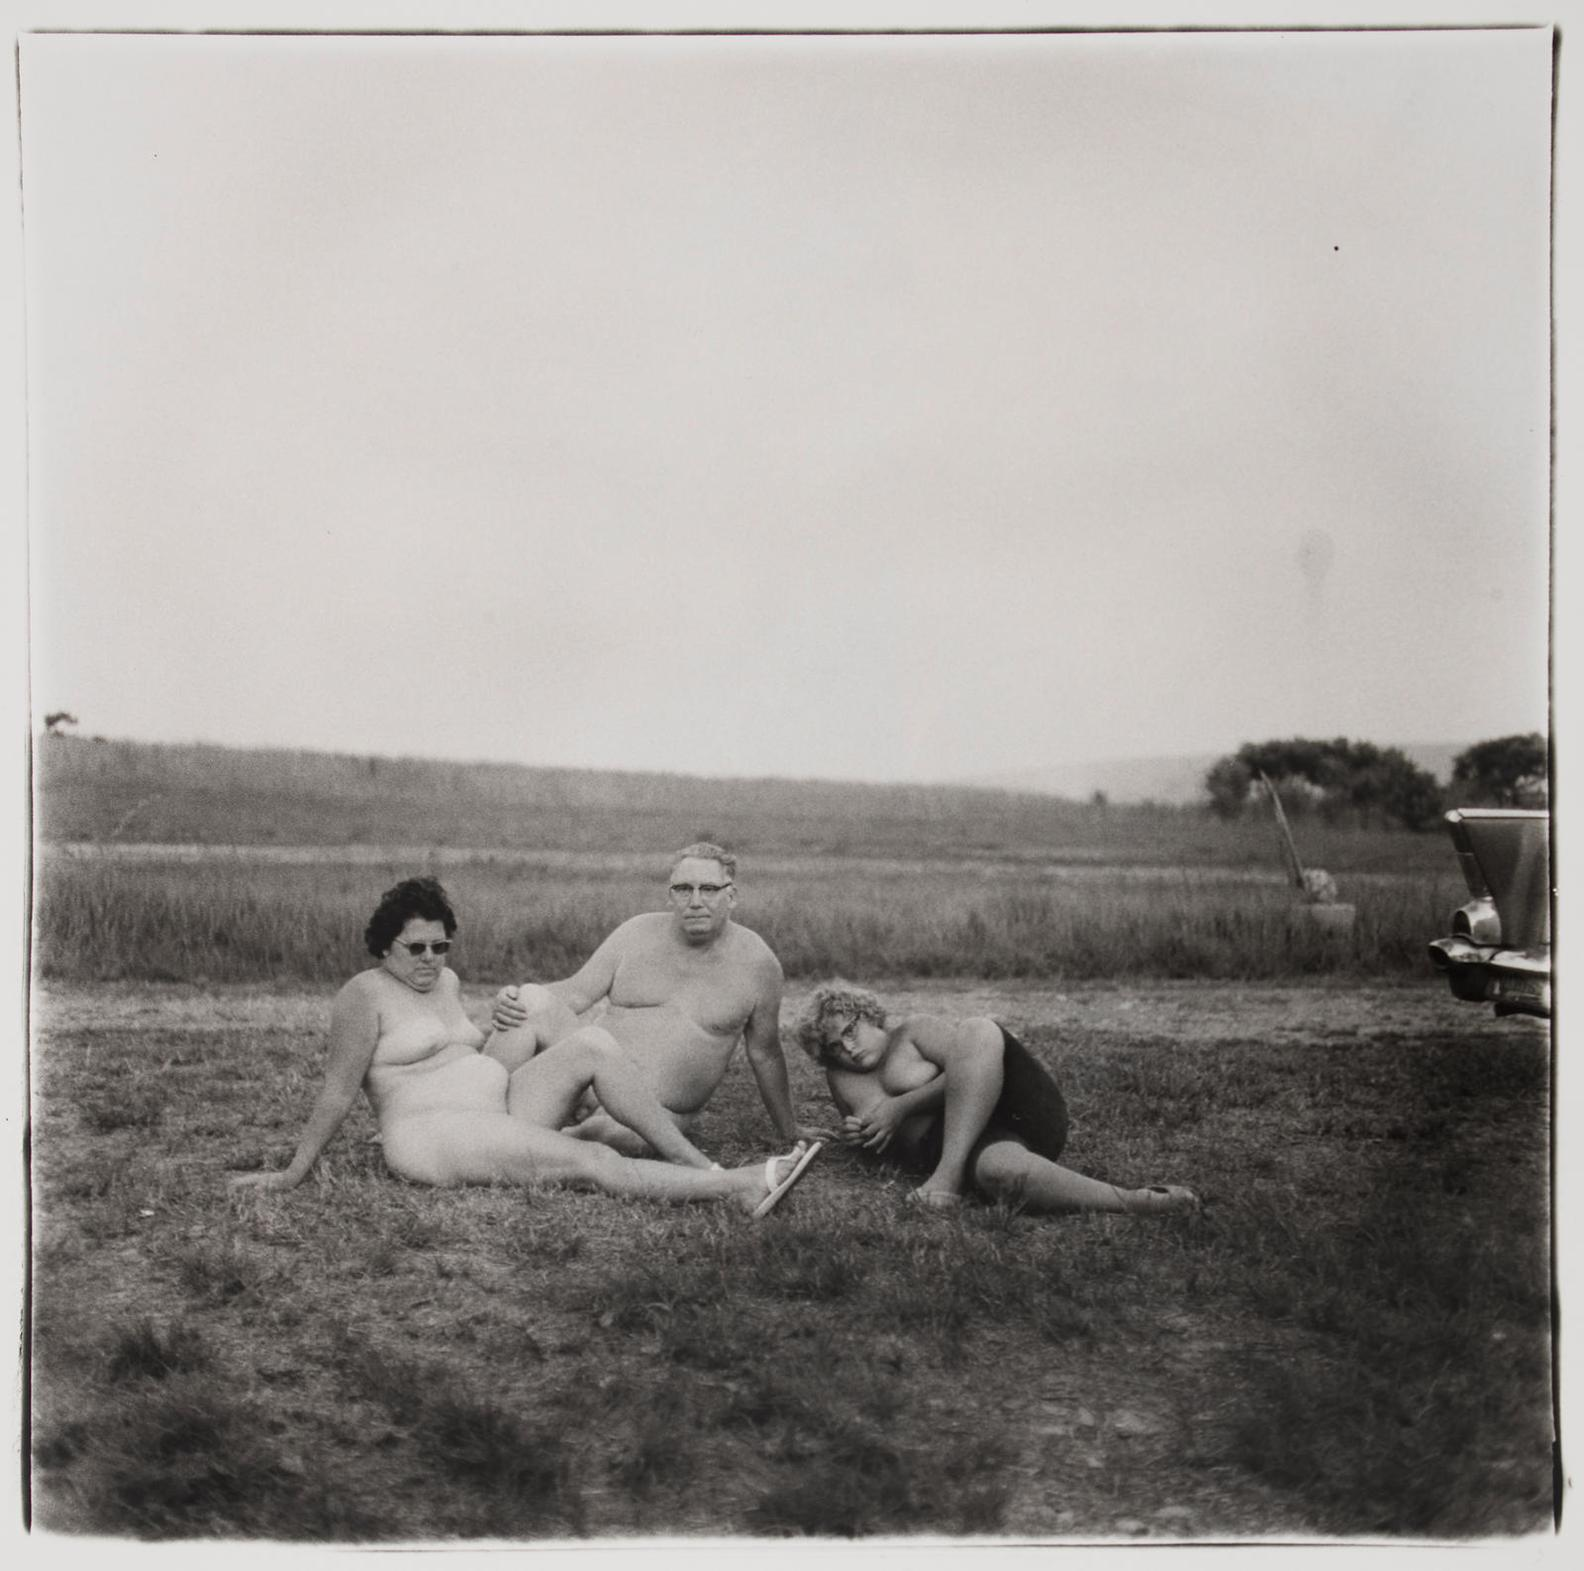 Diane Arbus-A Family One Night In A Nudist Camp, Pennsylvania-1965